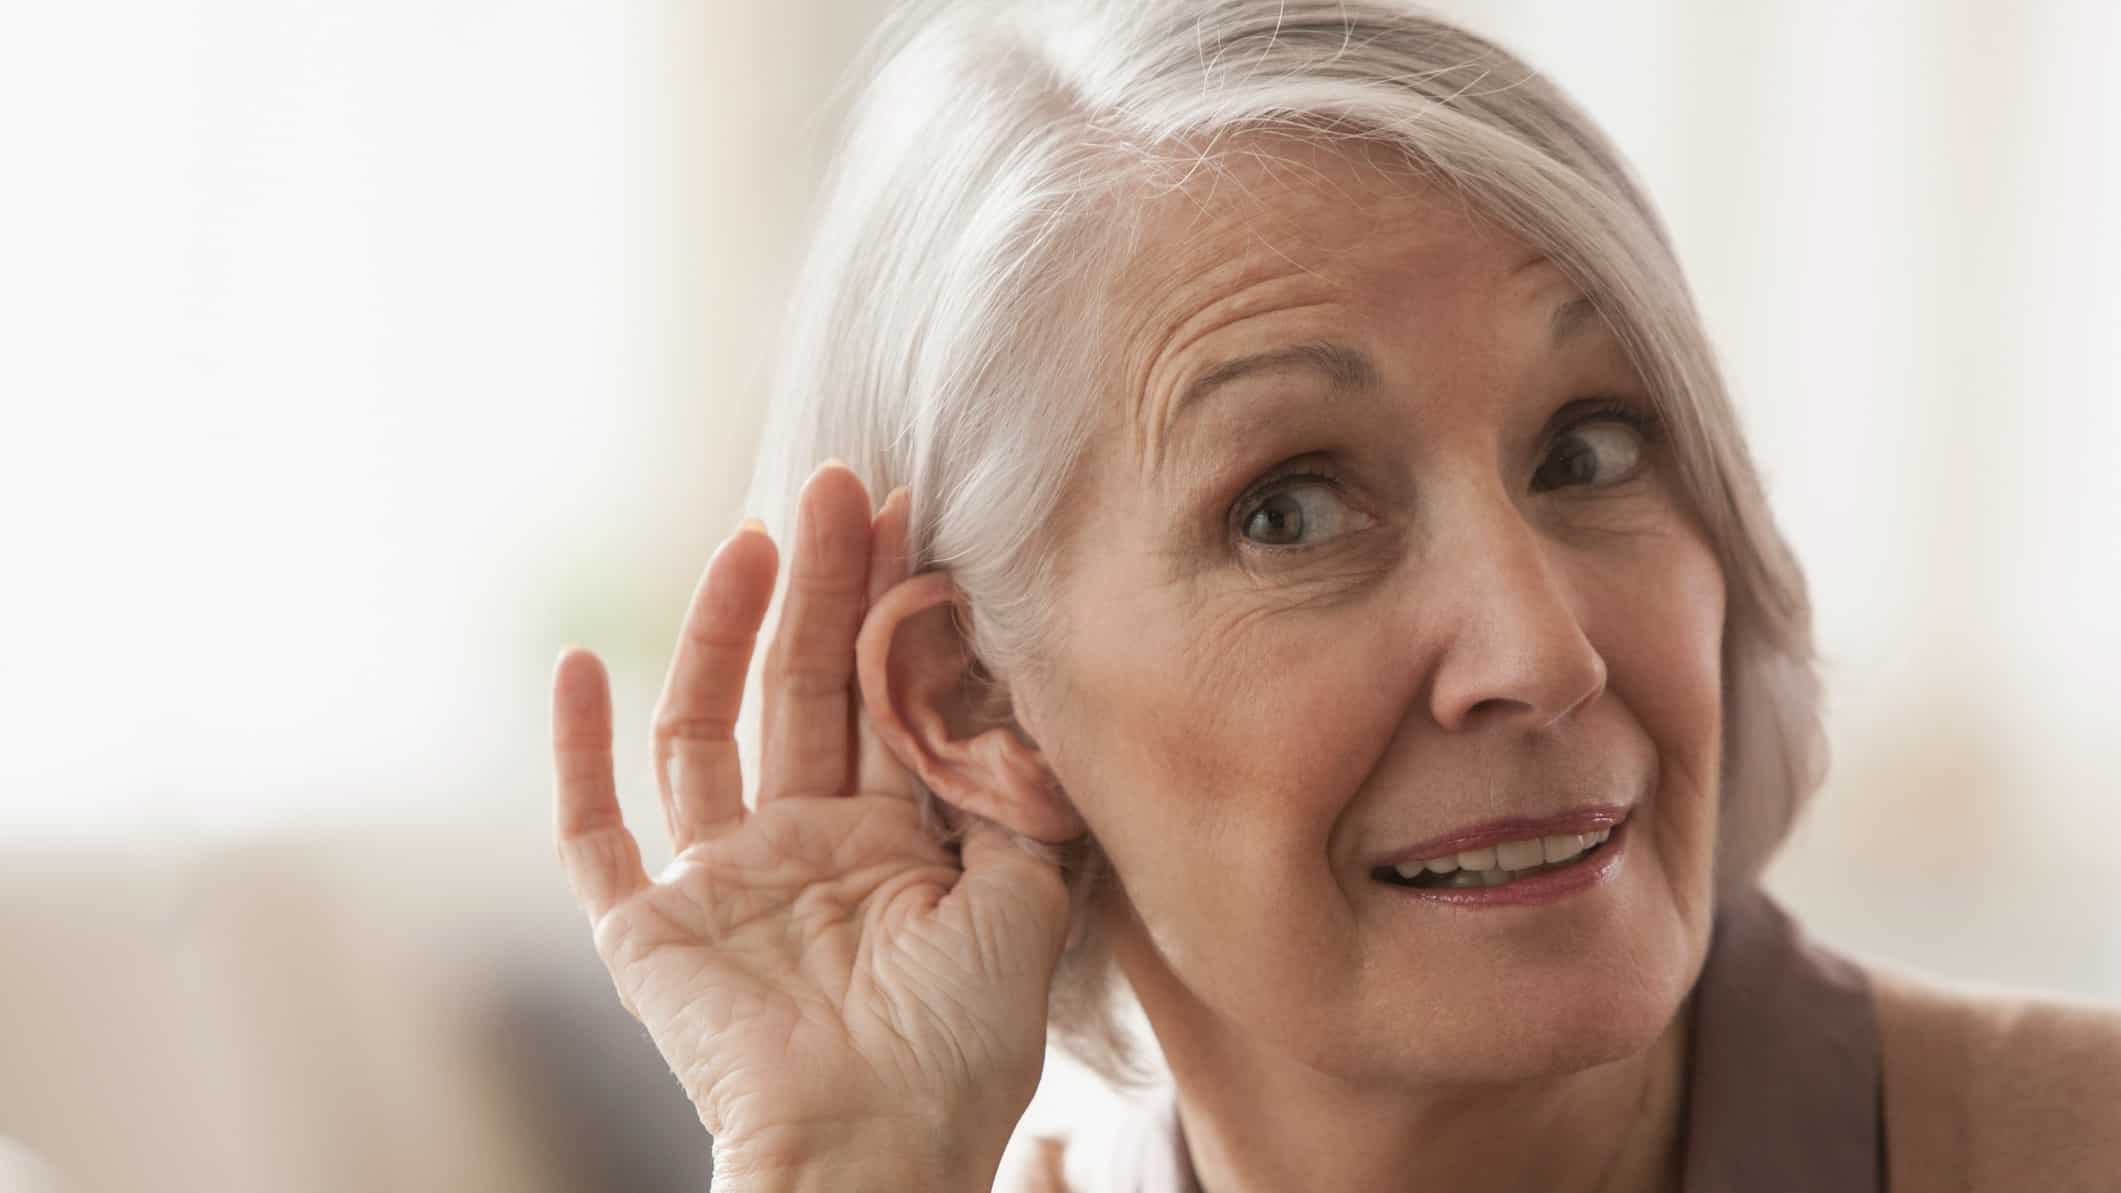 older woman tries to listen by cupping ear